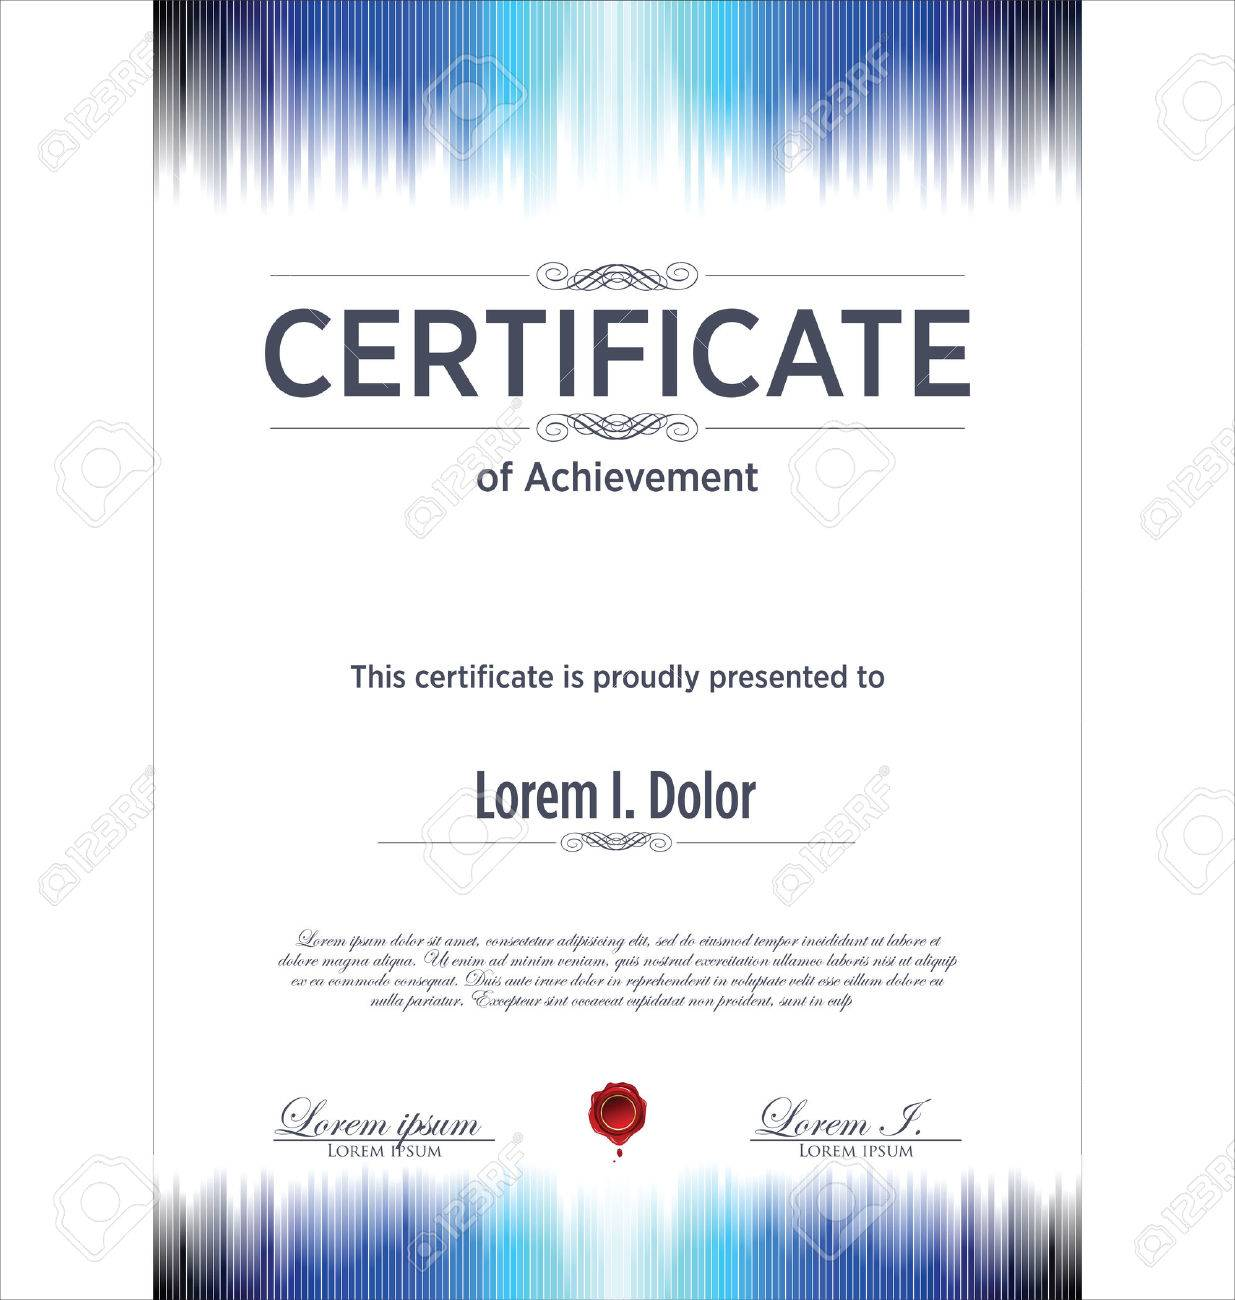 Blue Certificate Template Royalty Free Cliparts Vectors And Stock